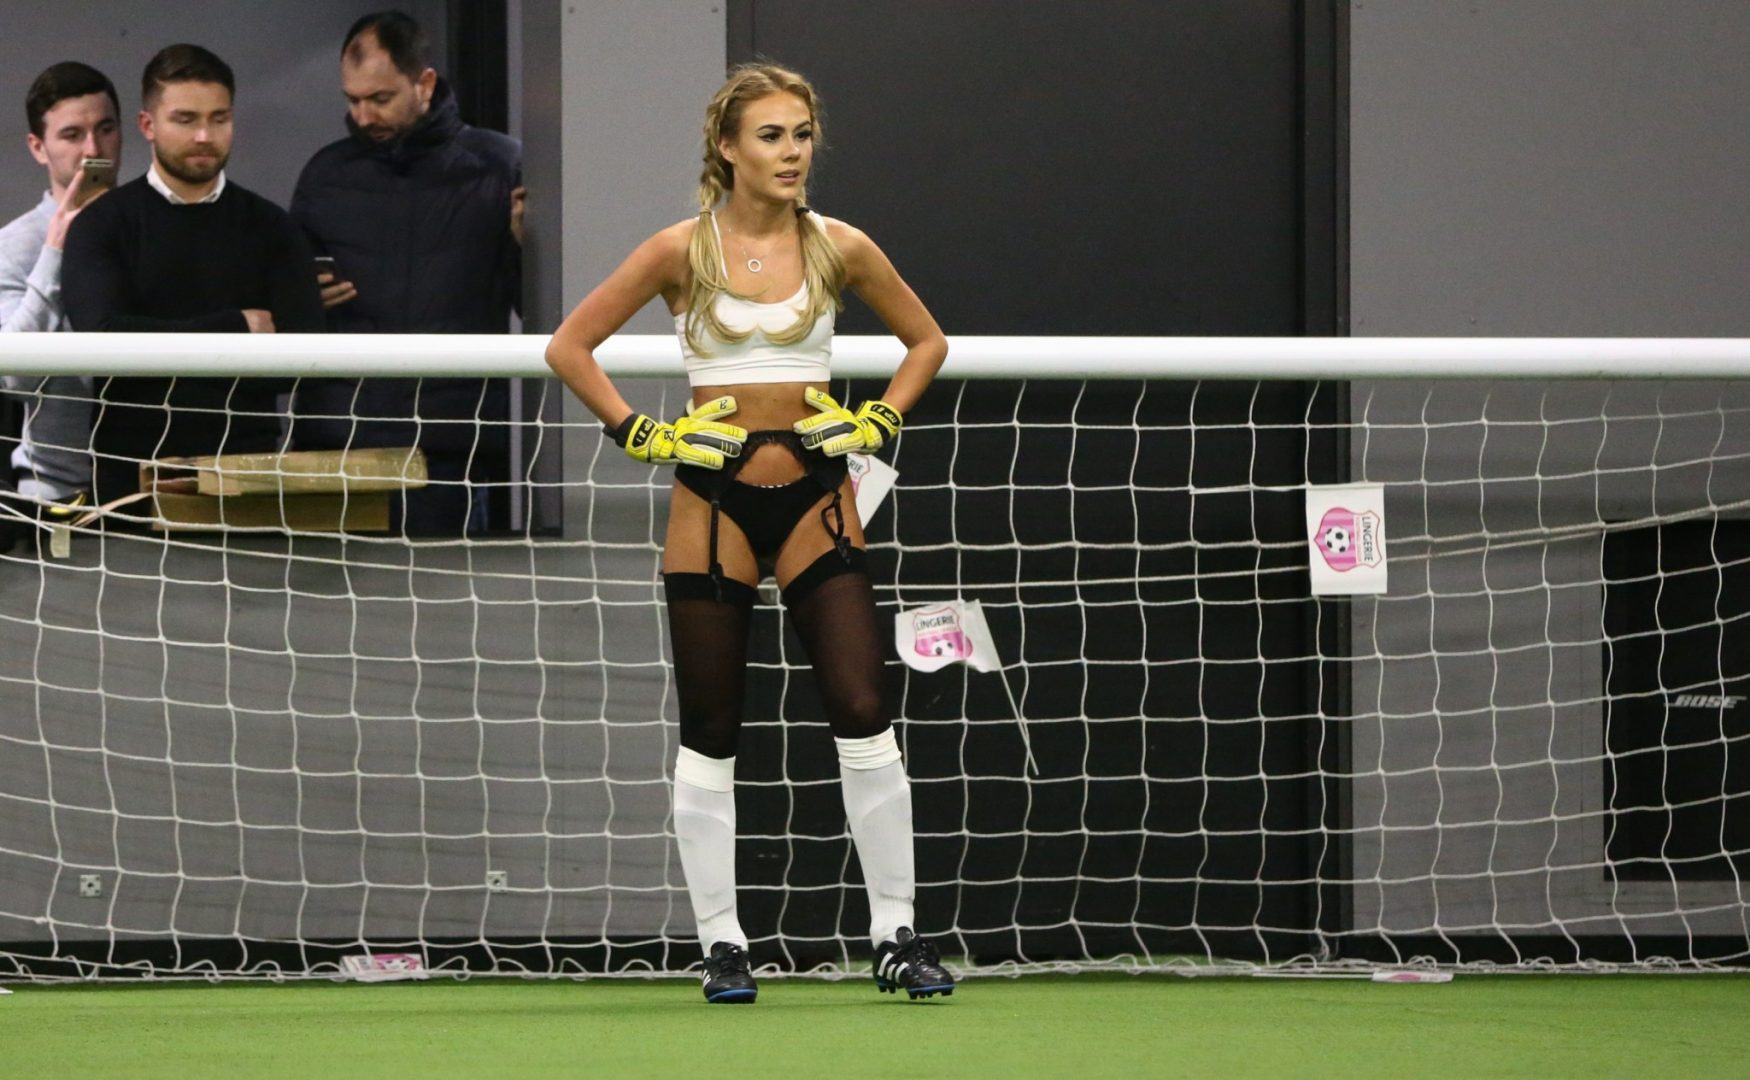 Lingerie Football League game at Manchester's Hotel Football